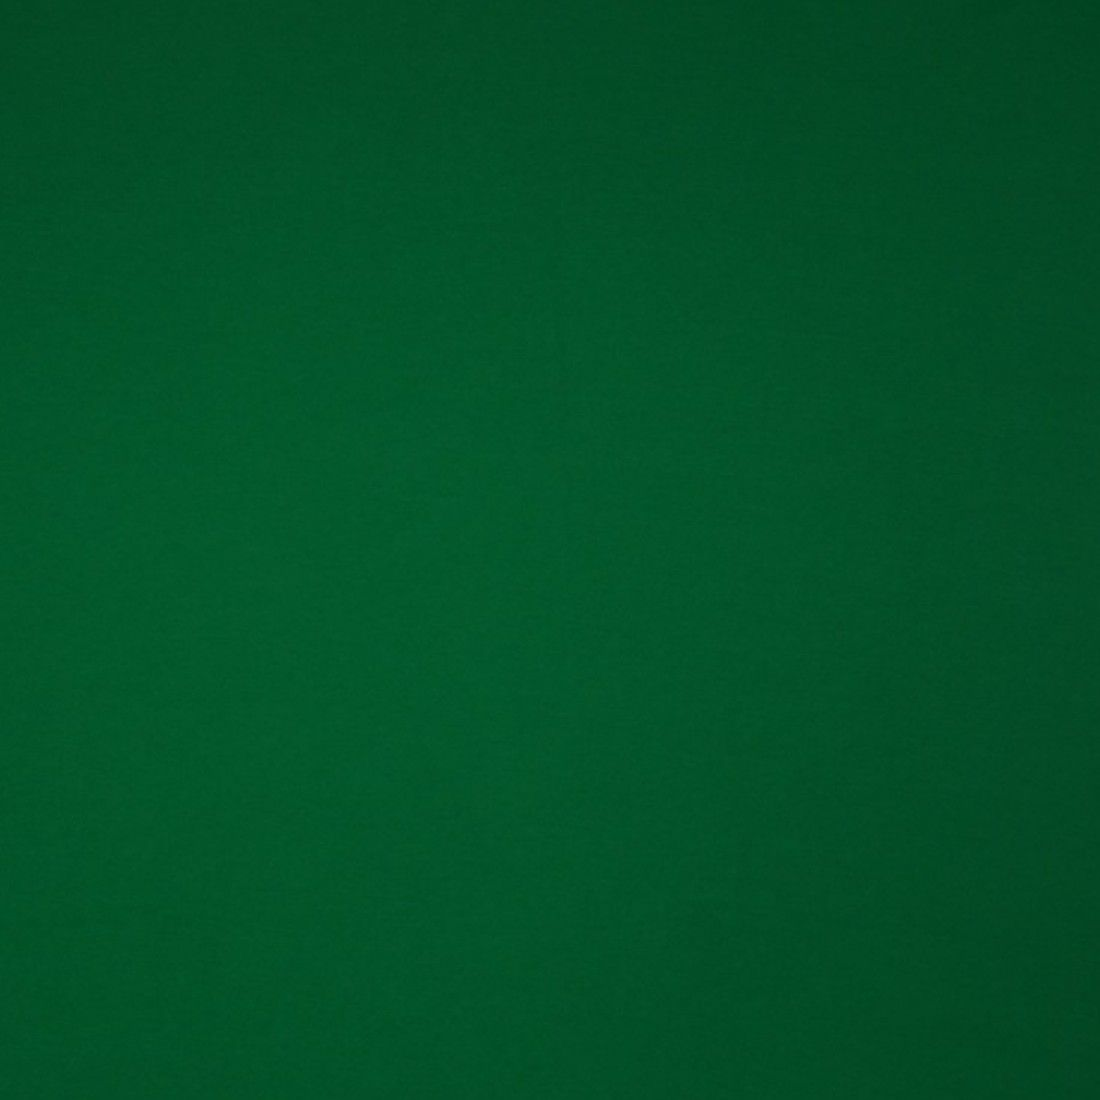 Remnant - Solid Colour Bamboo Jersey Fabric - Forest Green - 58 x 160cm